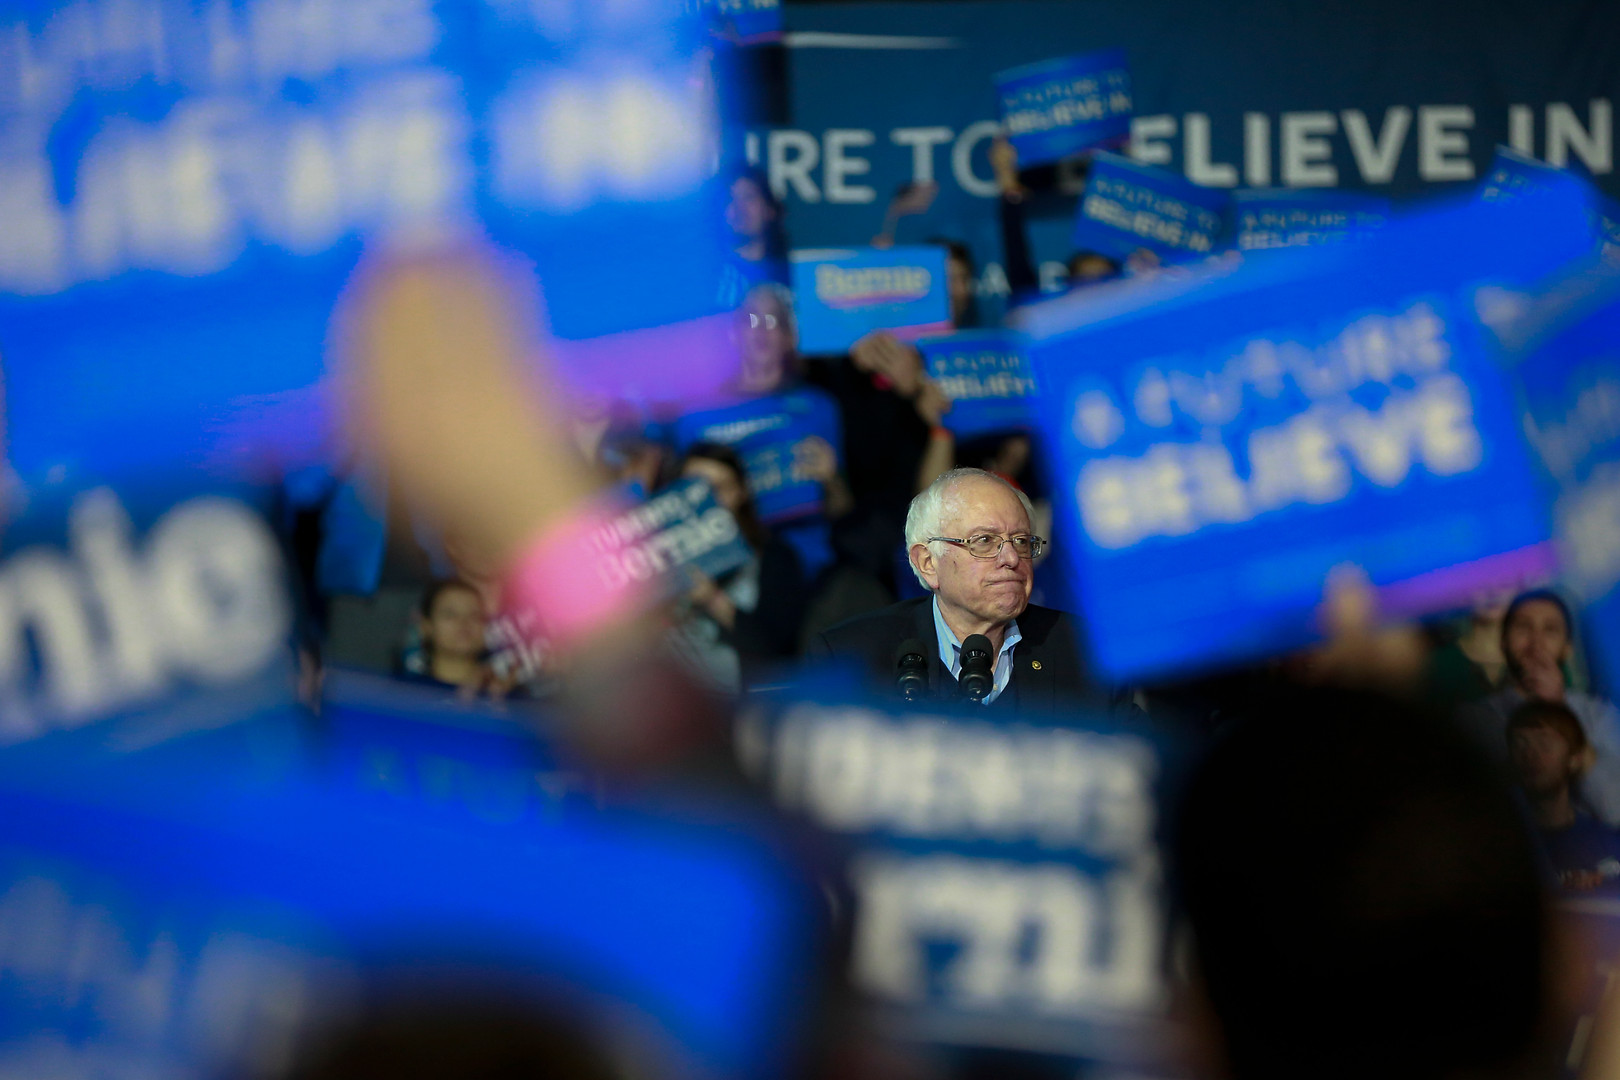 Bernie Sanders at a rally in New Hampshire during the 2016 Presidential Primaries